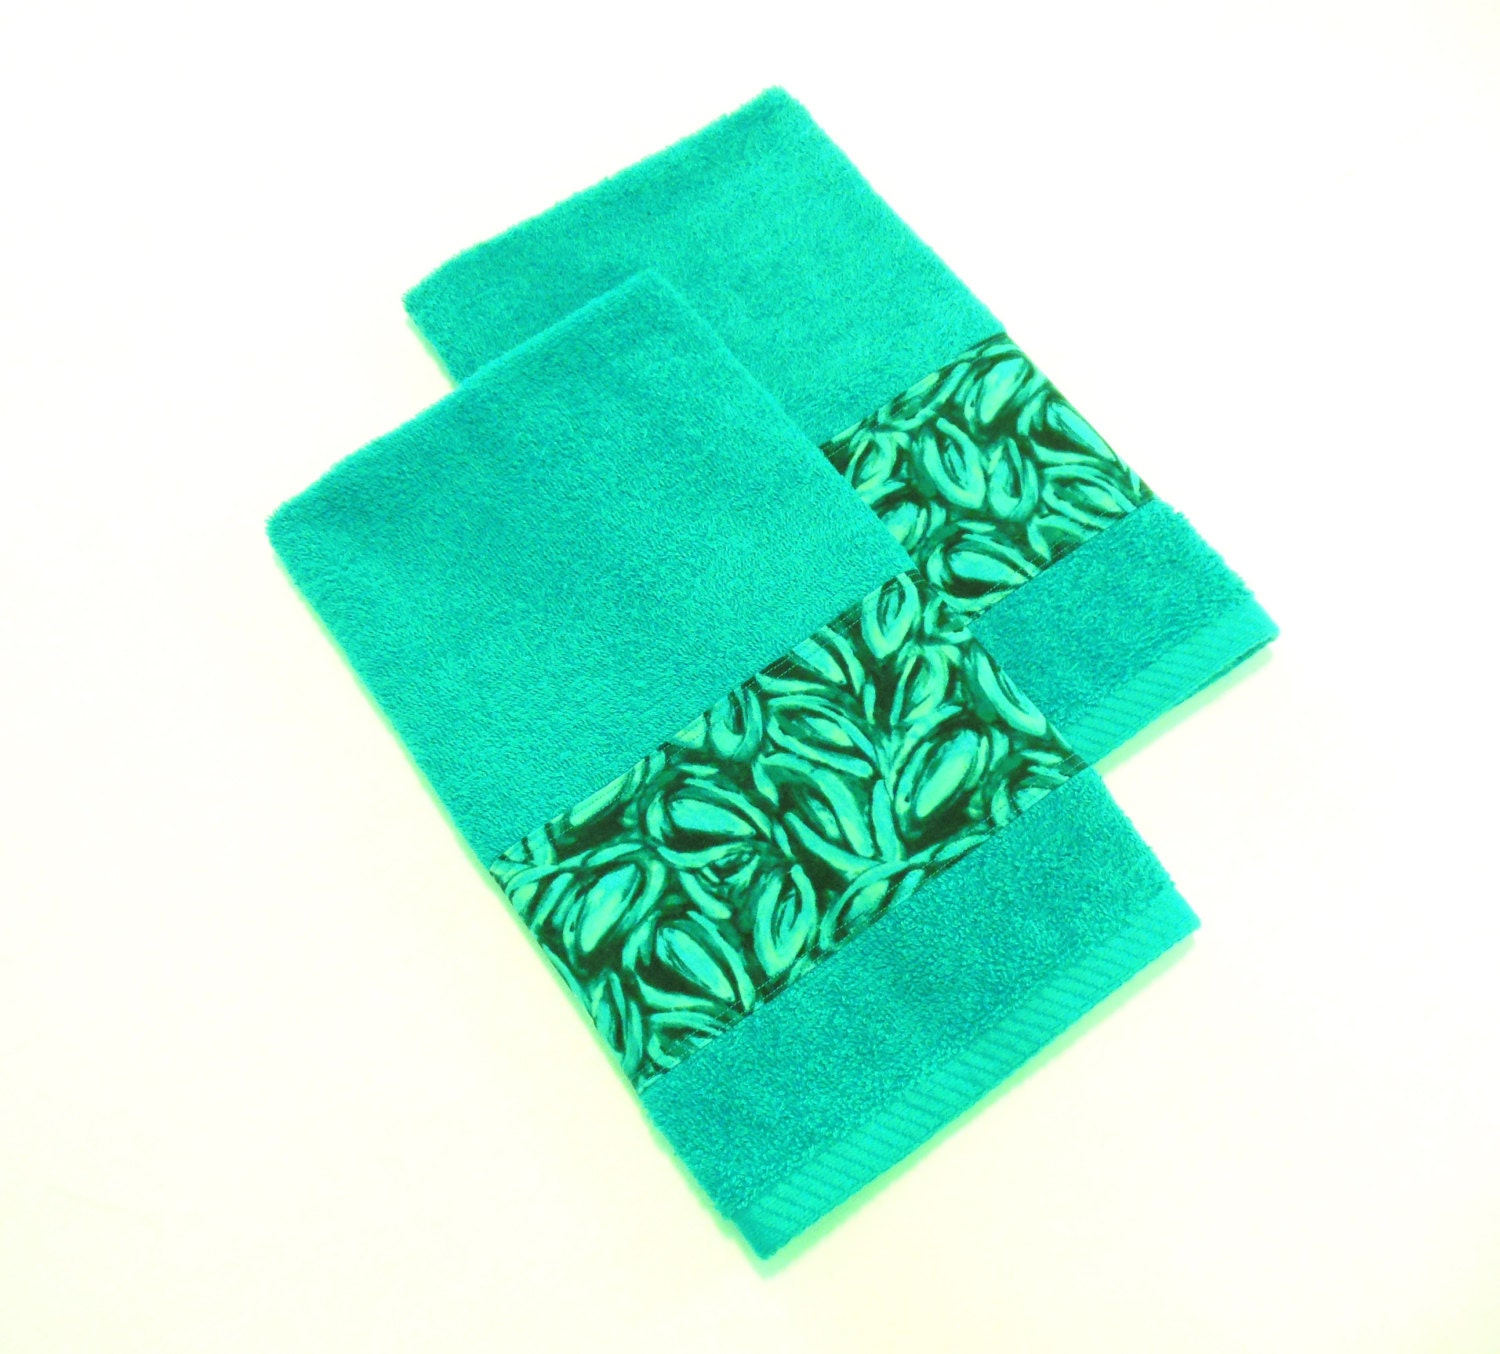 Teal hand towels decorative bathroom towels modern set of 2 for Decorative bath towels